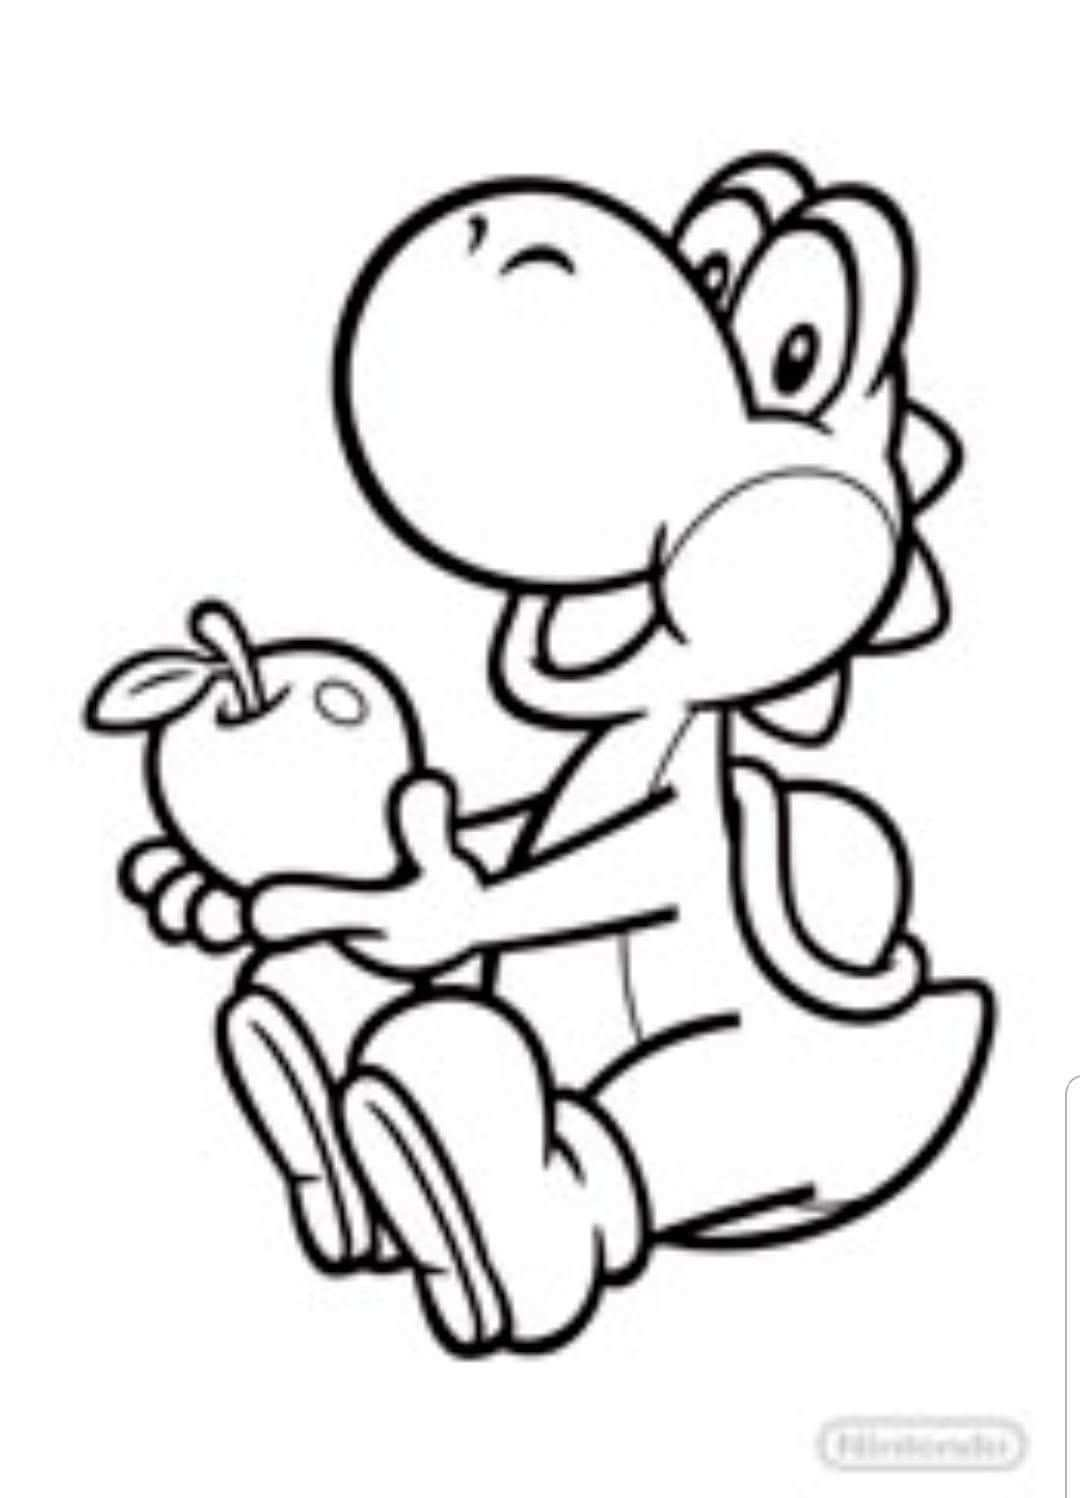 Pin By Erica Echevarria On Mario Super Mario Coloring Pages